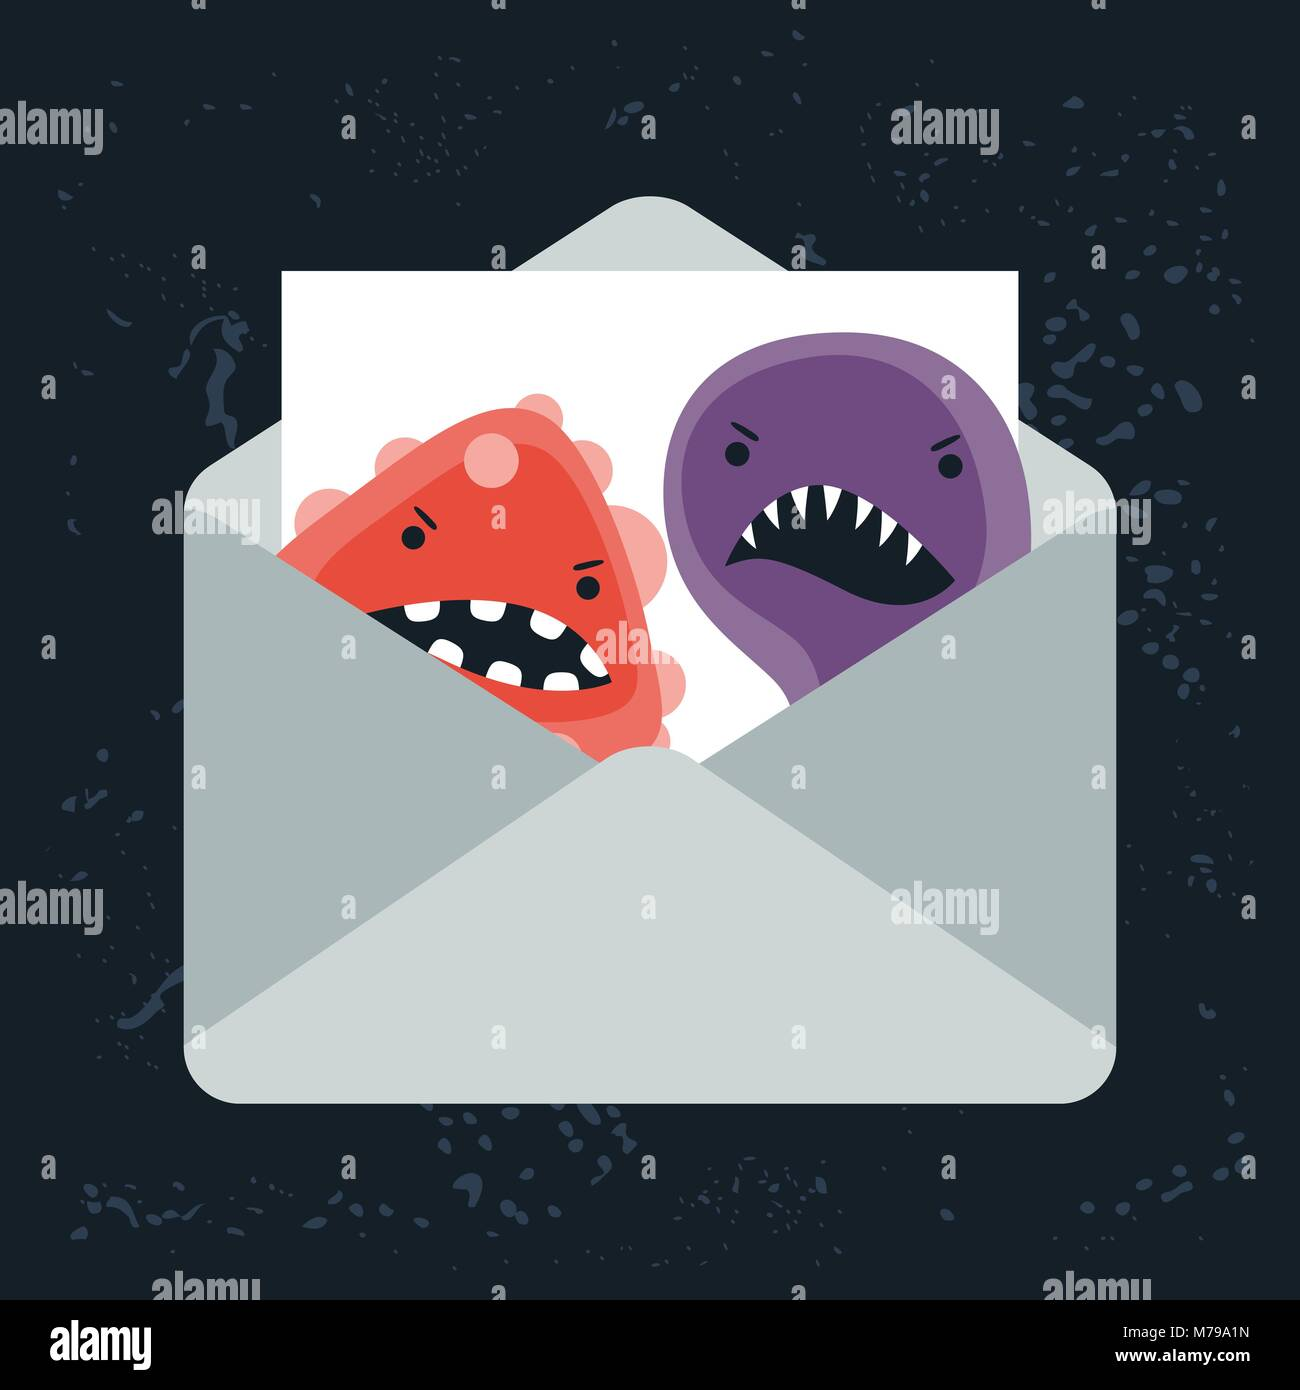 Abstract illustration email spam virus infection. - Stock Image